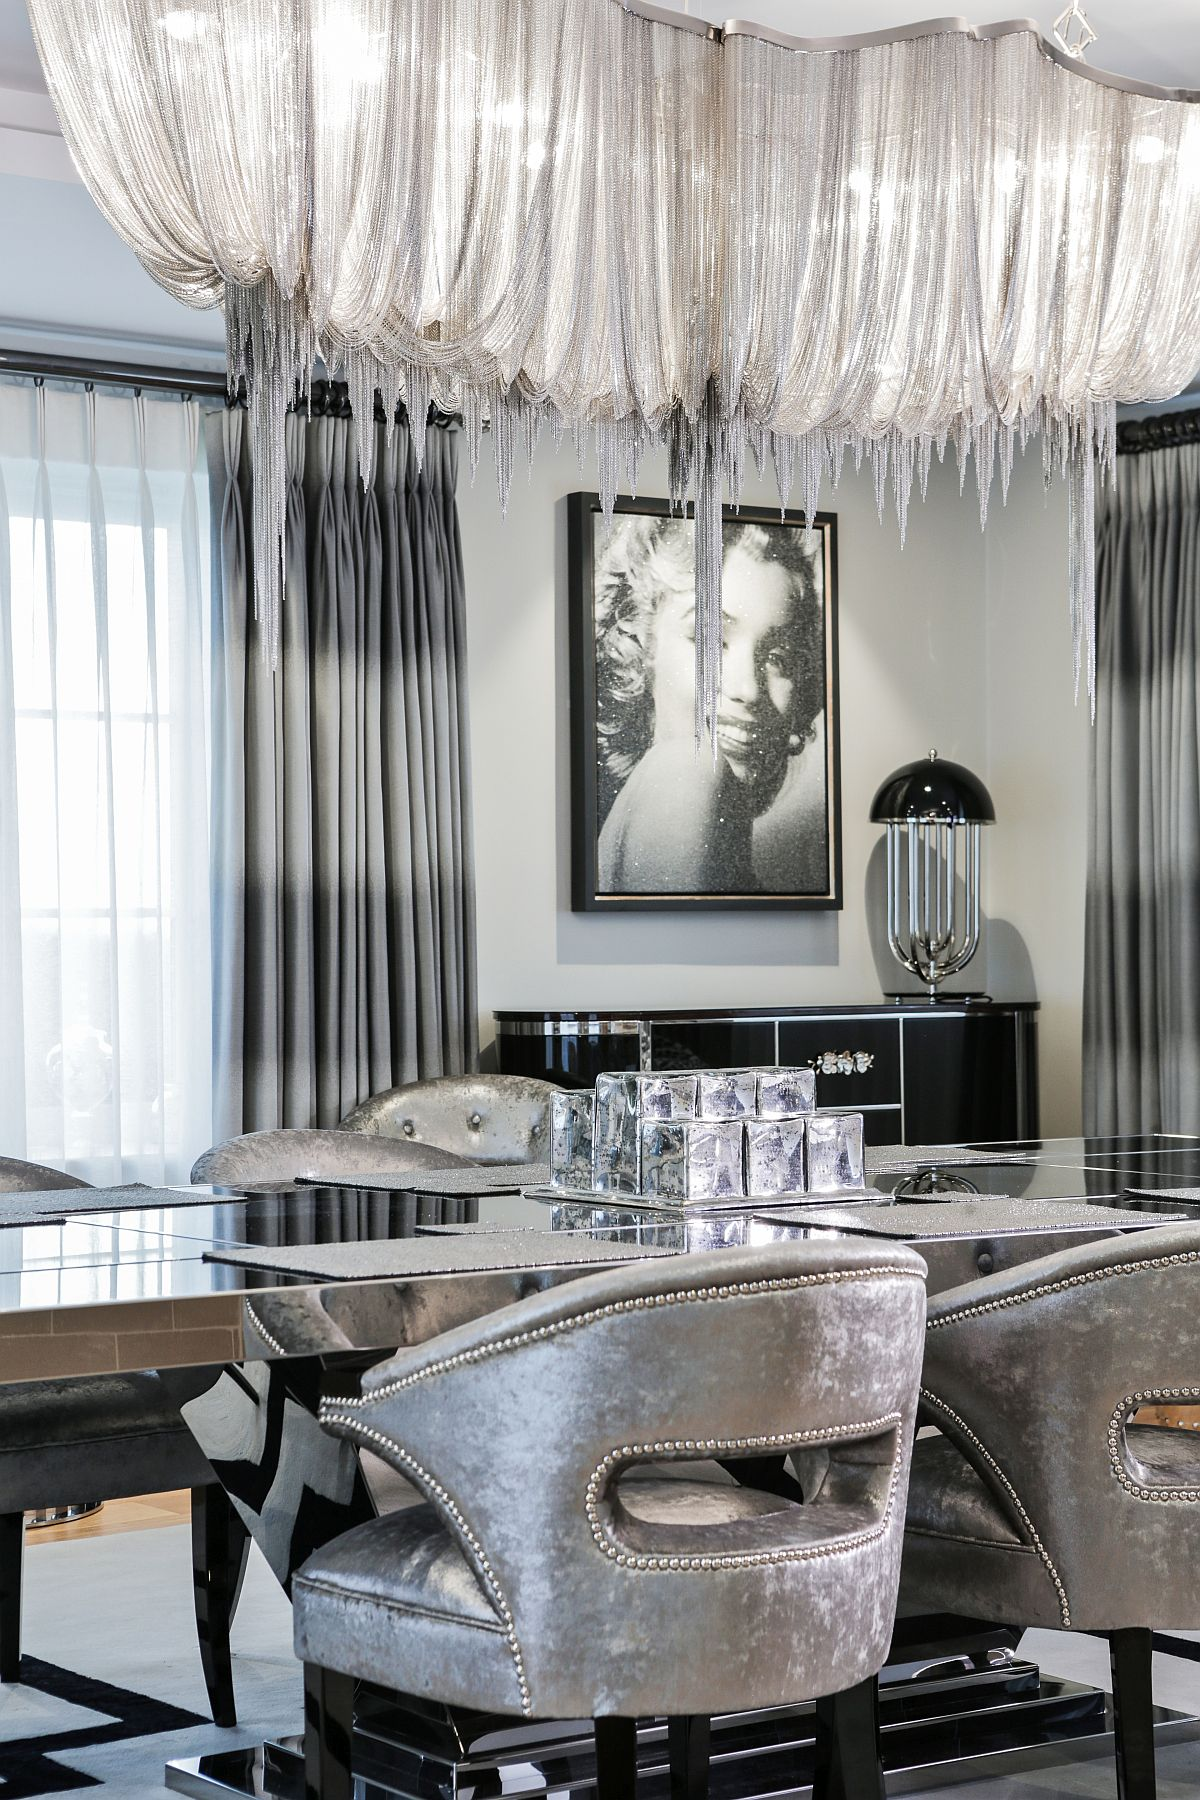 Captivating chandelier in the dining room is an absolute showstopper